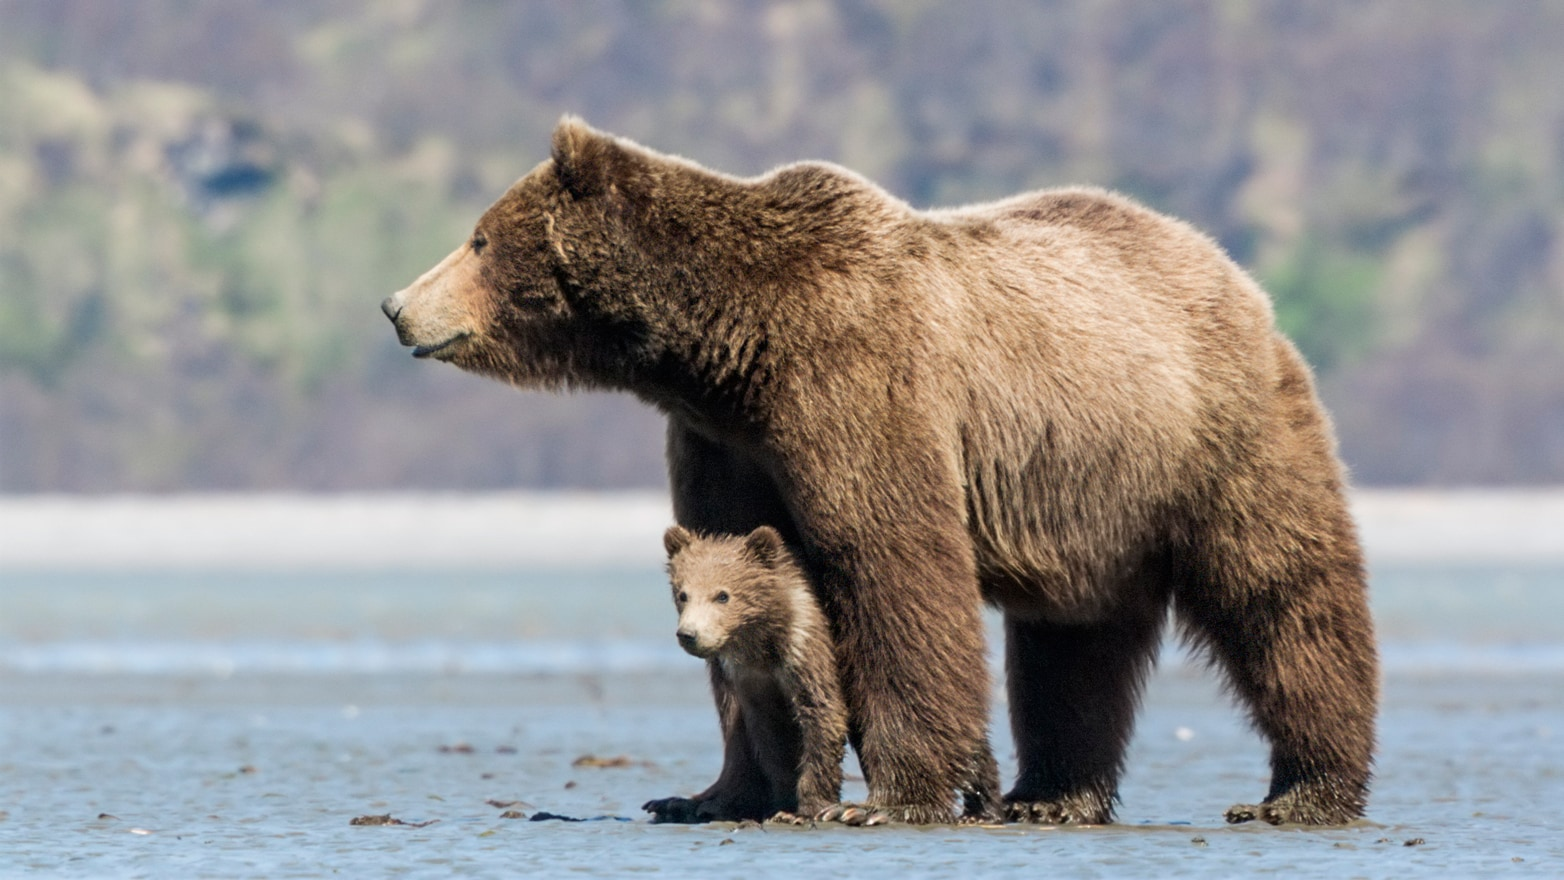 Staying Safe around Bears - Bears (U.S. National Park Service)